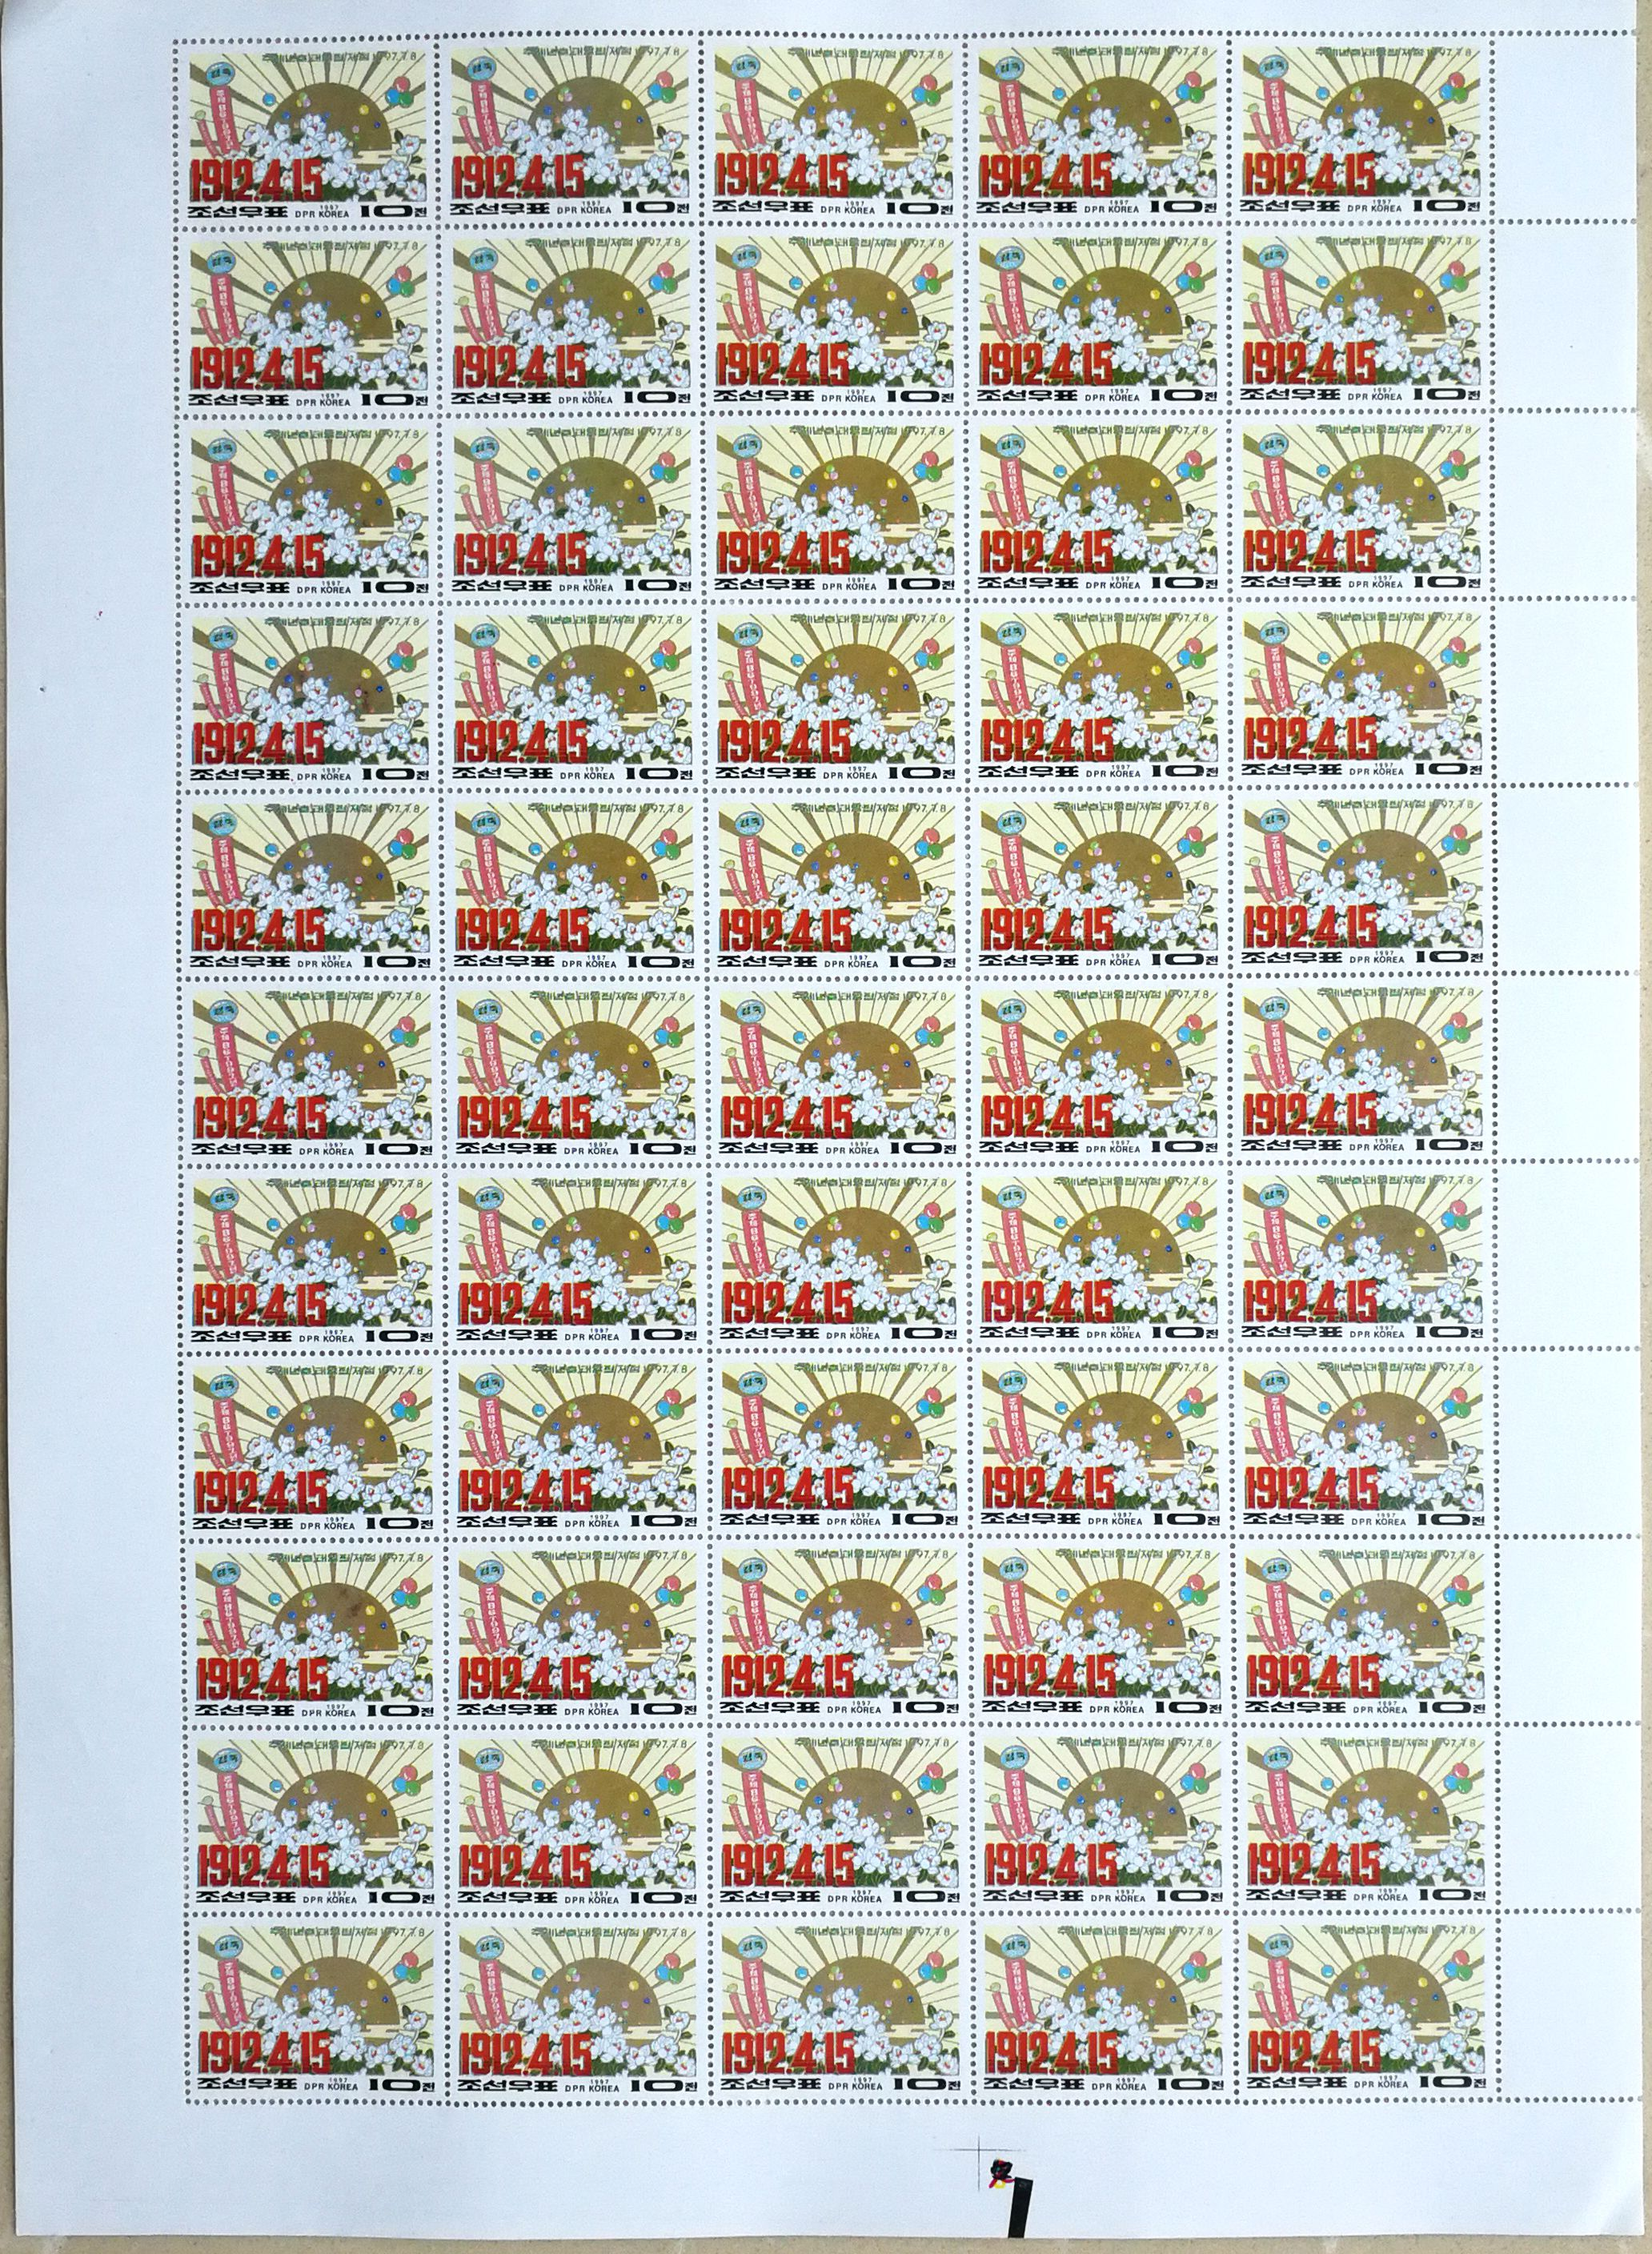 "L4460, Korea ""Juche Year and Day of Sun"", Full Sheet of 55 Pcs Stamps, 1997"